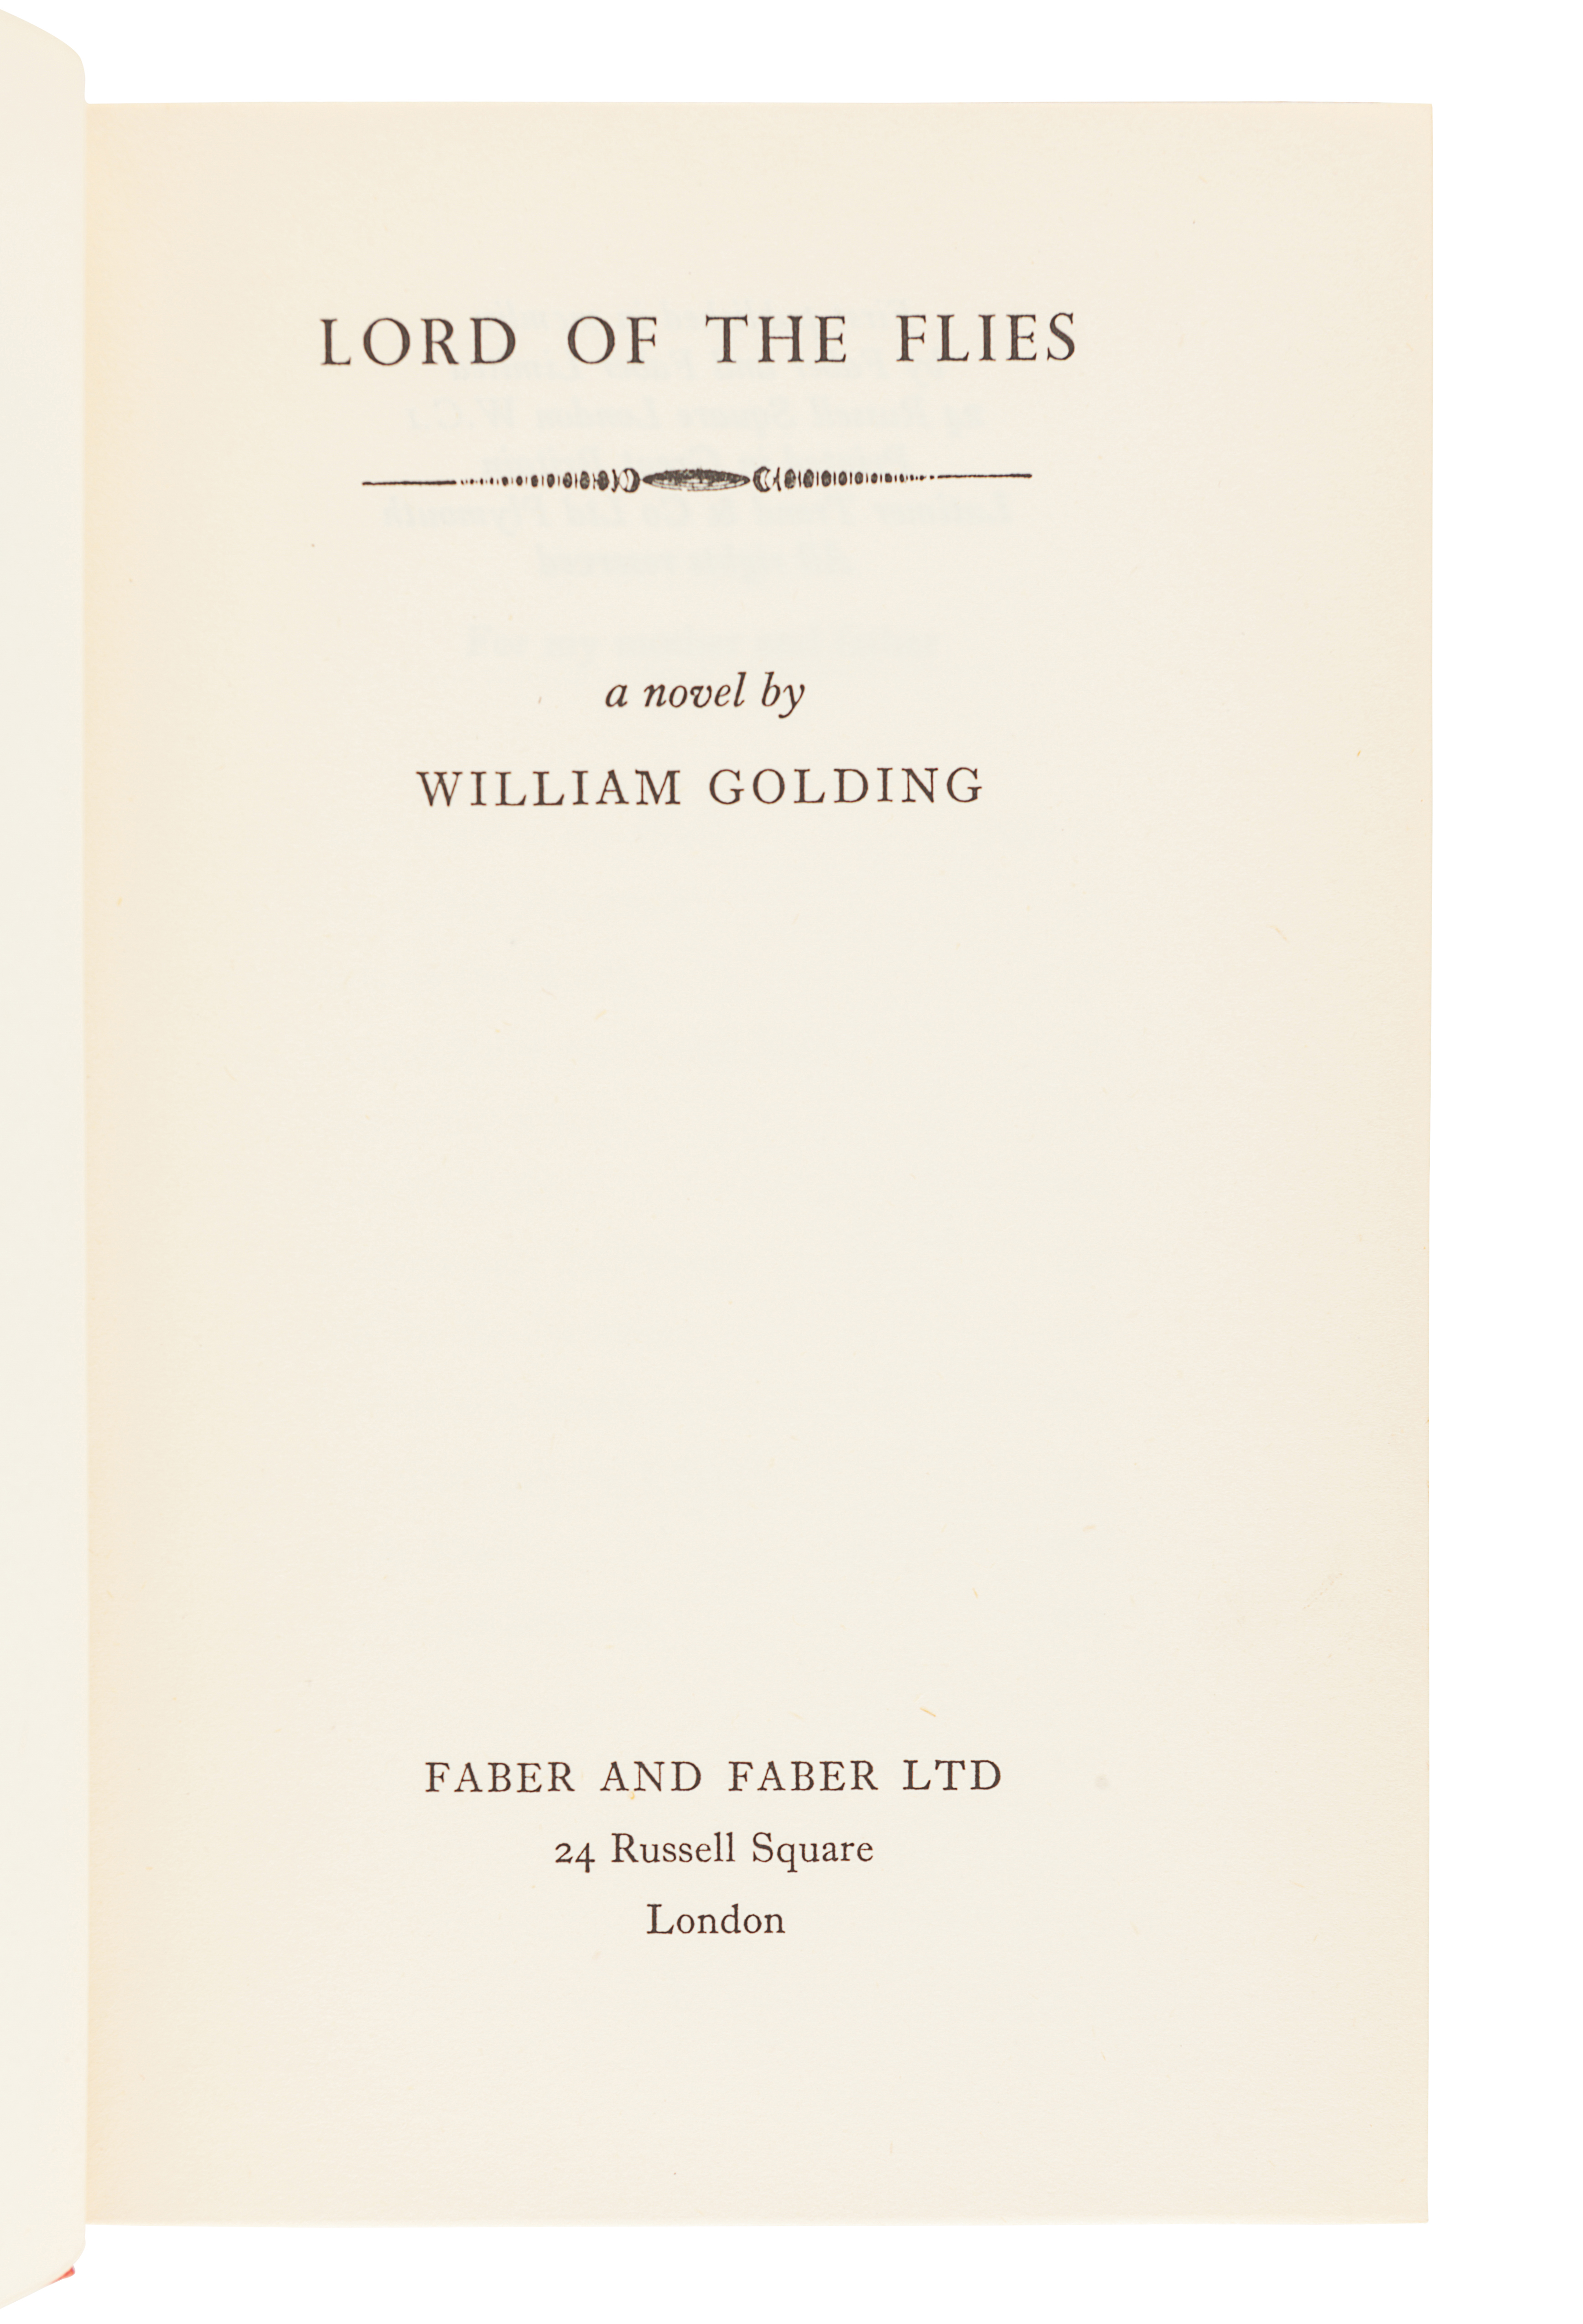 GOLDING, William (1911-1993). Lord of the Flies. London: Faber and Faber, 1954. - Image 3 of 3